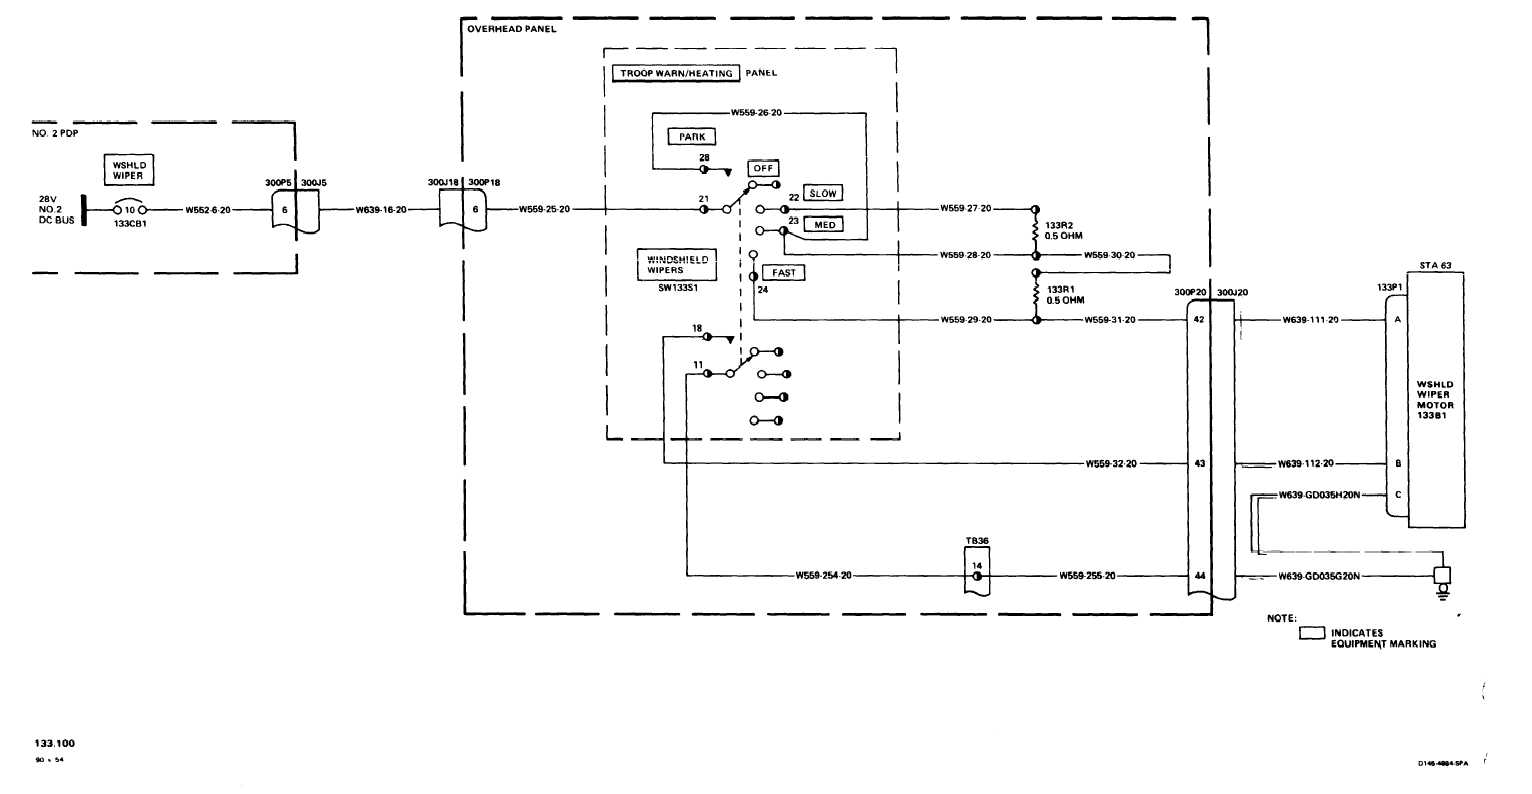 TM 55 1520 240 T 3_590_1 wiper wiring diagram wiper wiring diagram 67 firebird \u2022 wiring 2003 PT Cruiser Wiring-Diagram at reclaimingppi.co